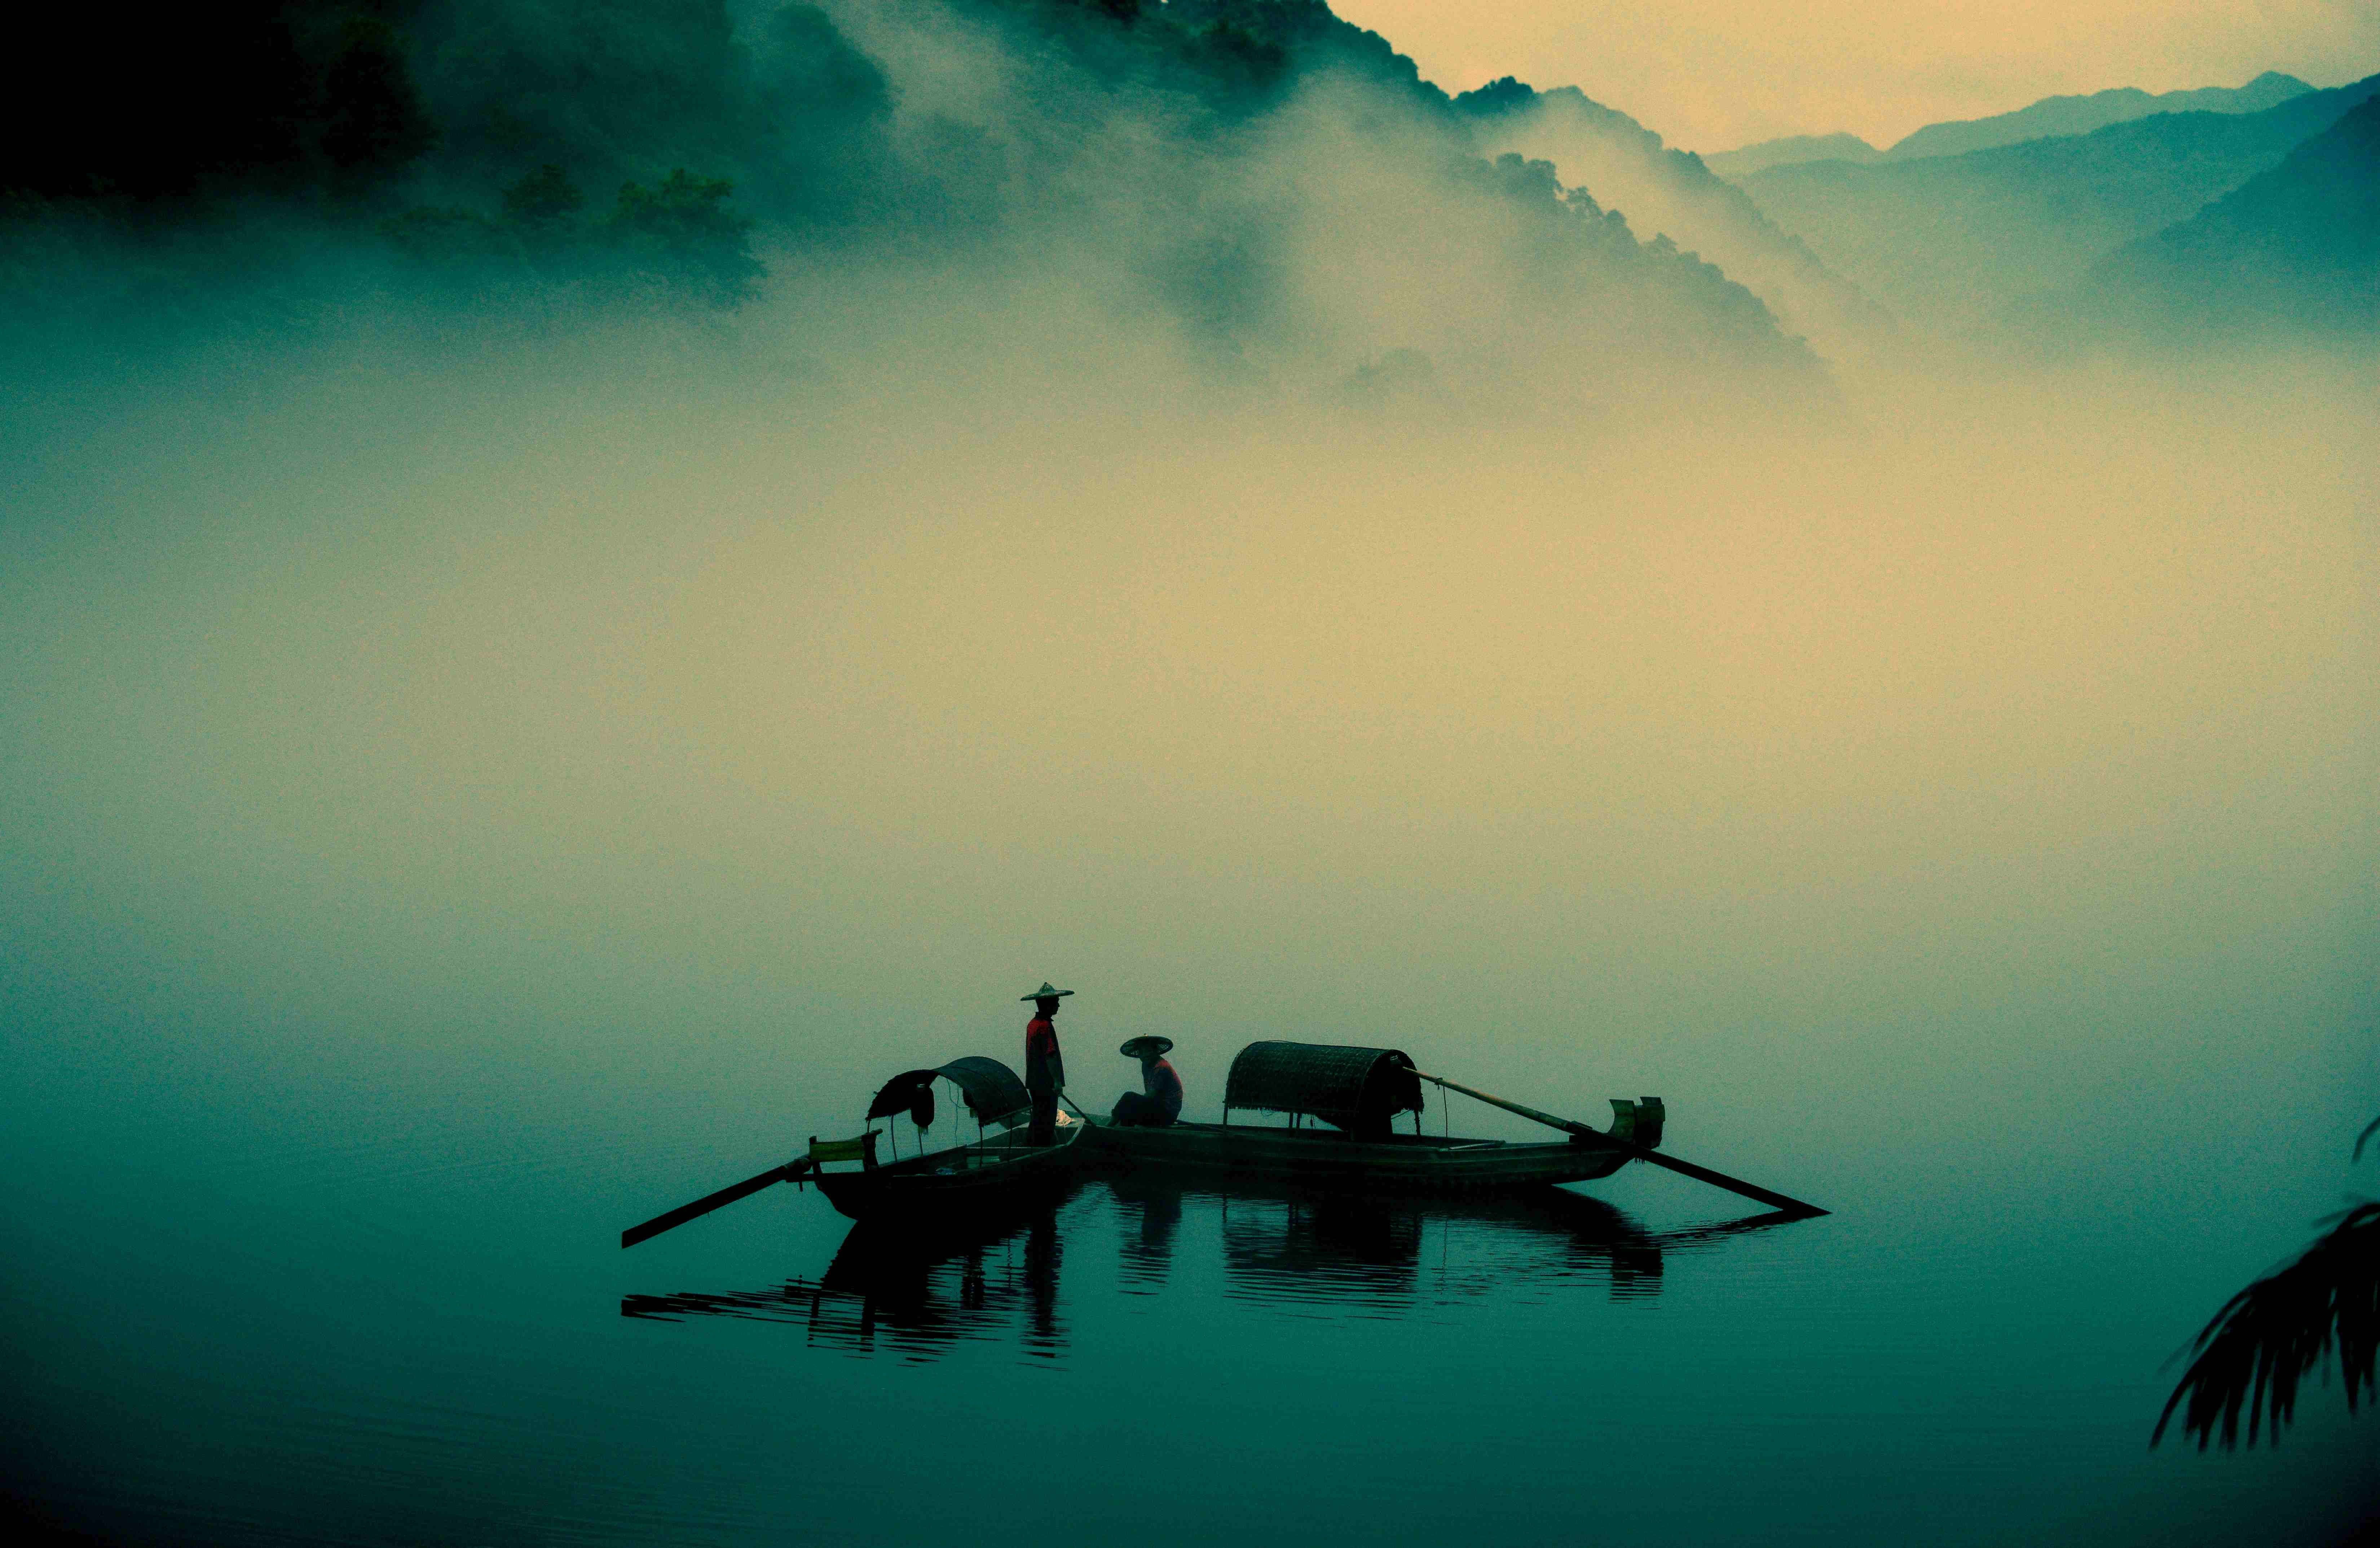 Two fisherman wearing hats on their canoes on a lake in the morning fog